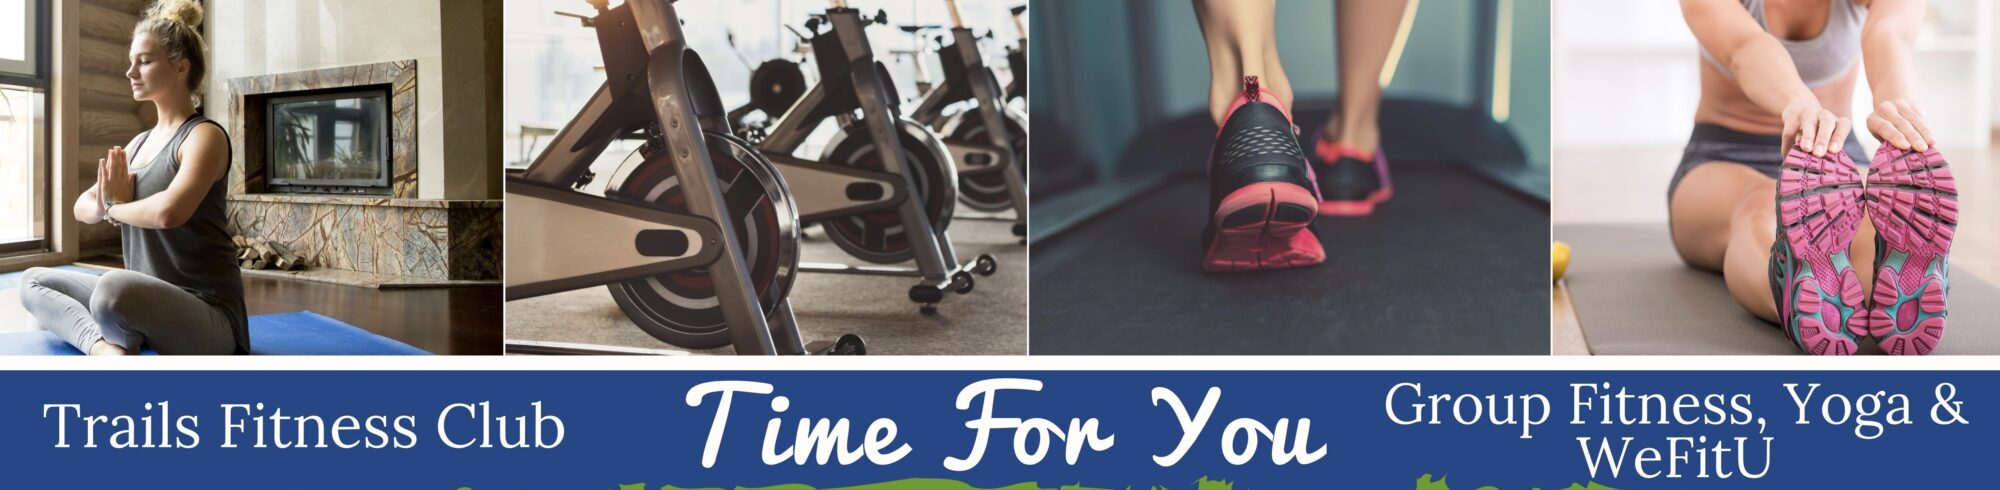 fitness club and fitness classes